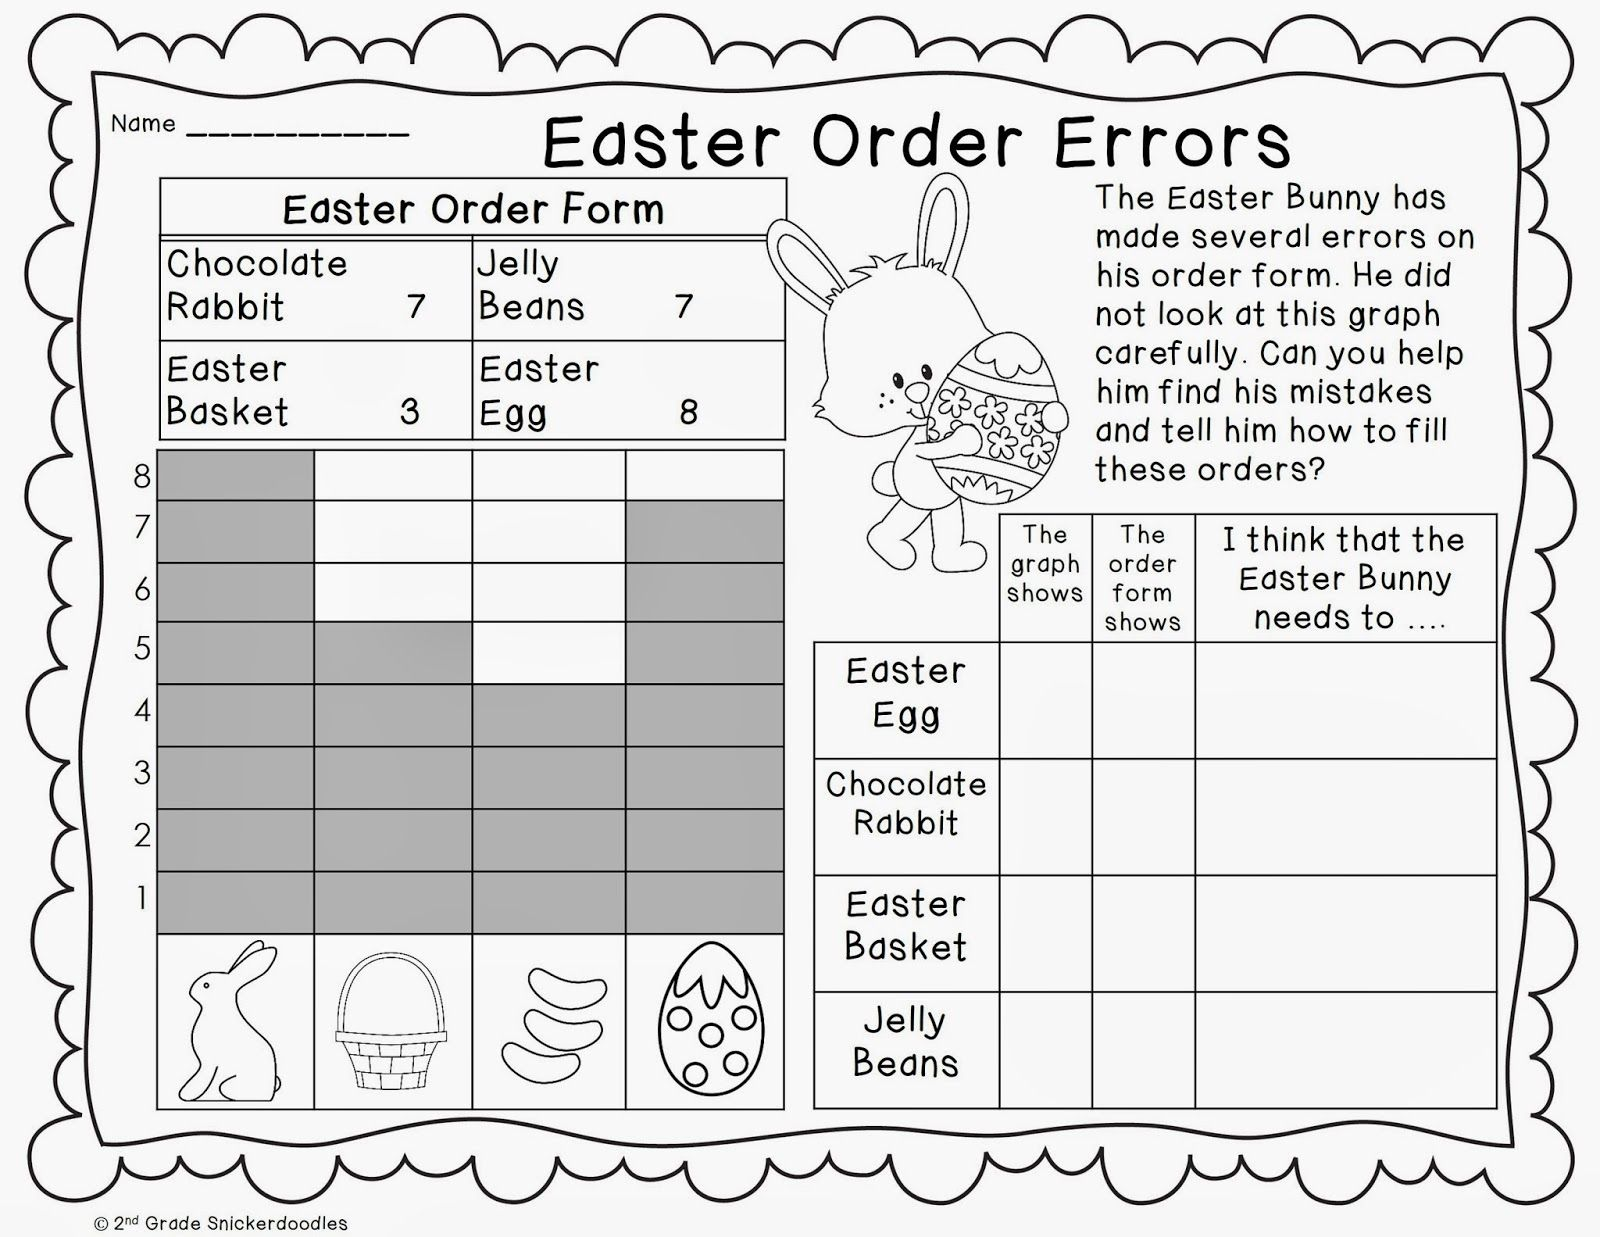 Graphing Freebies Spring Math Worksheets Graphing Worksheets Graphing Freebie [ 1237 x 1600 Pixel ]